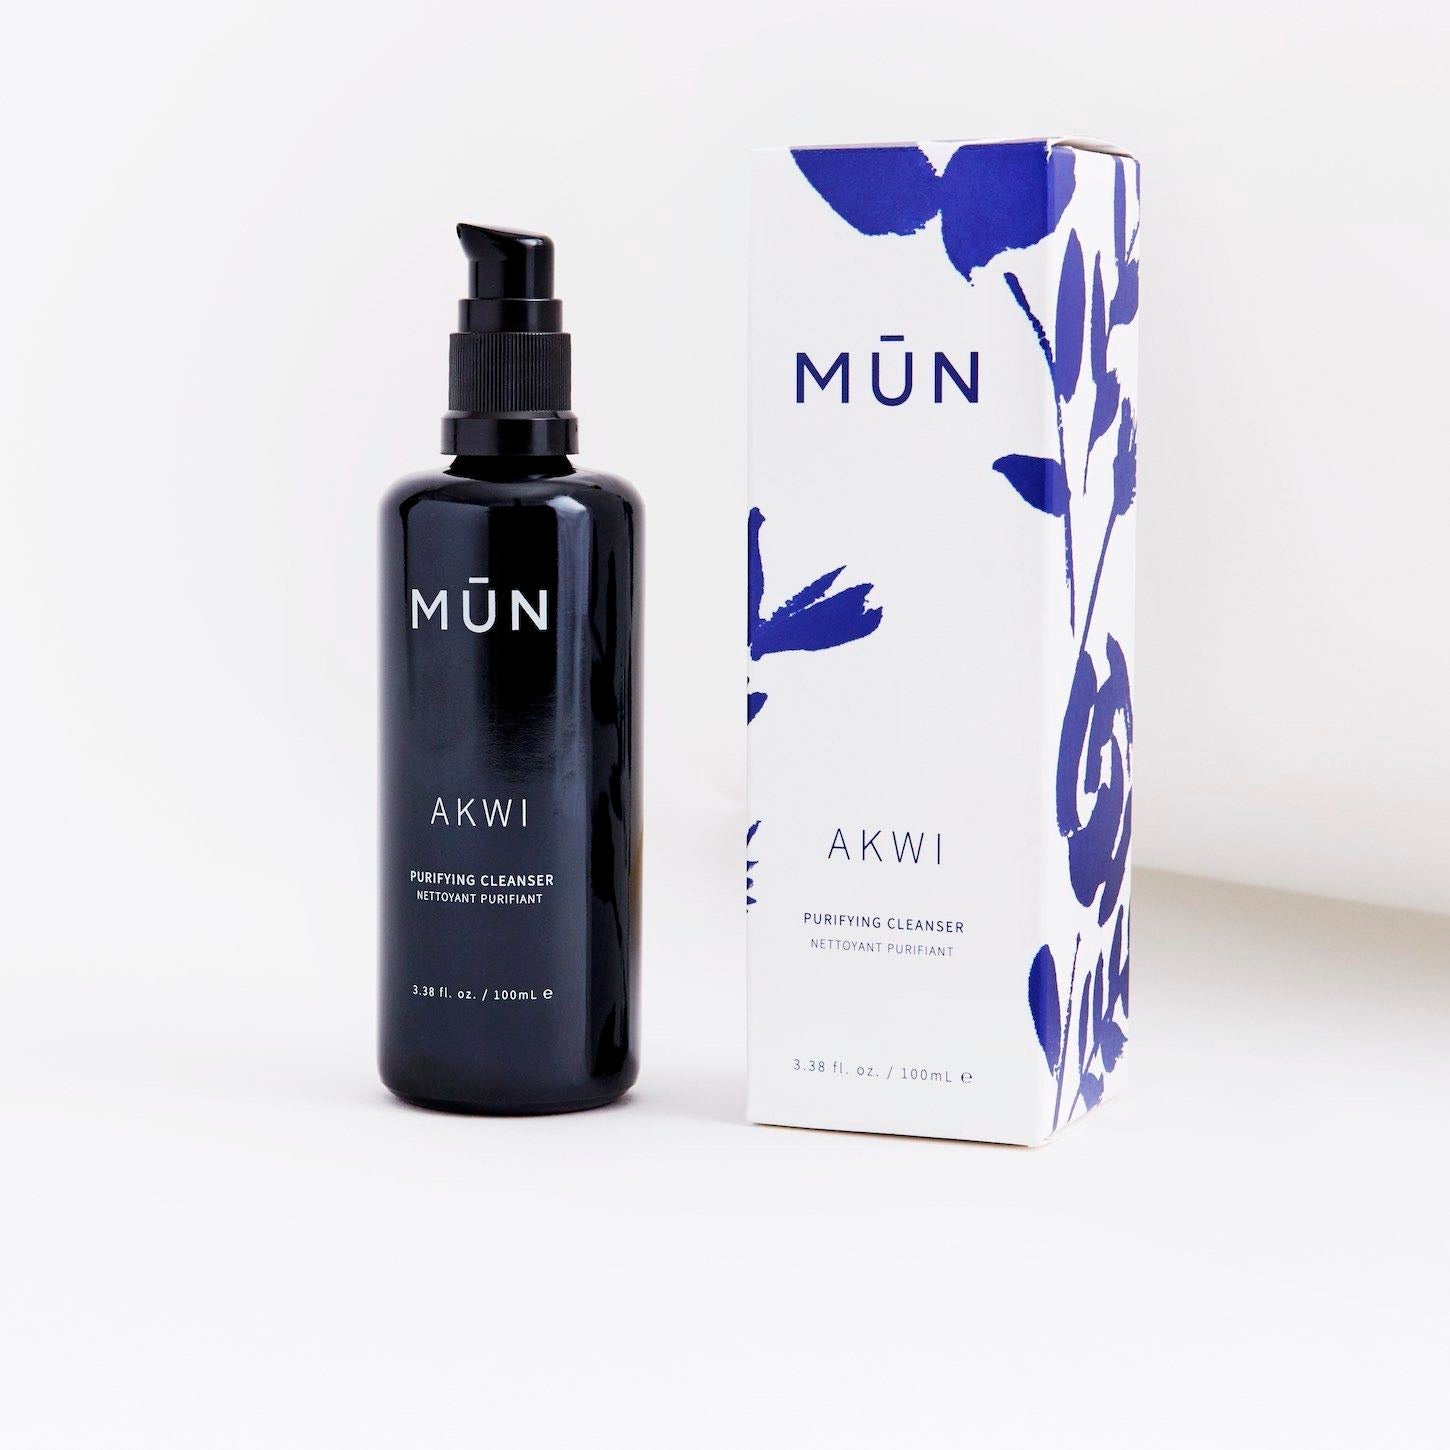 MUN Akwi Purifying Cleanser Packaging - Natural & Organic Skin Care